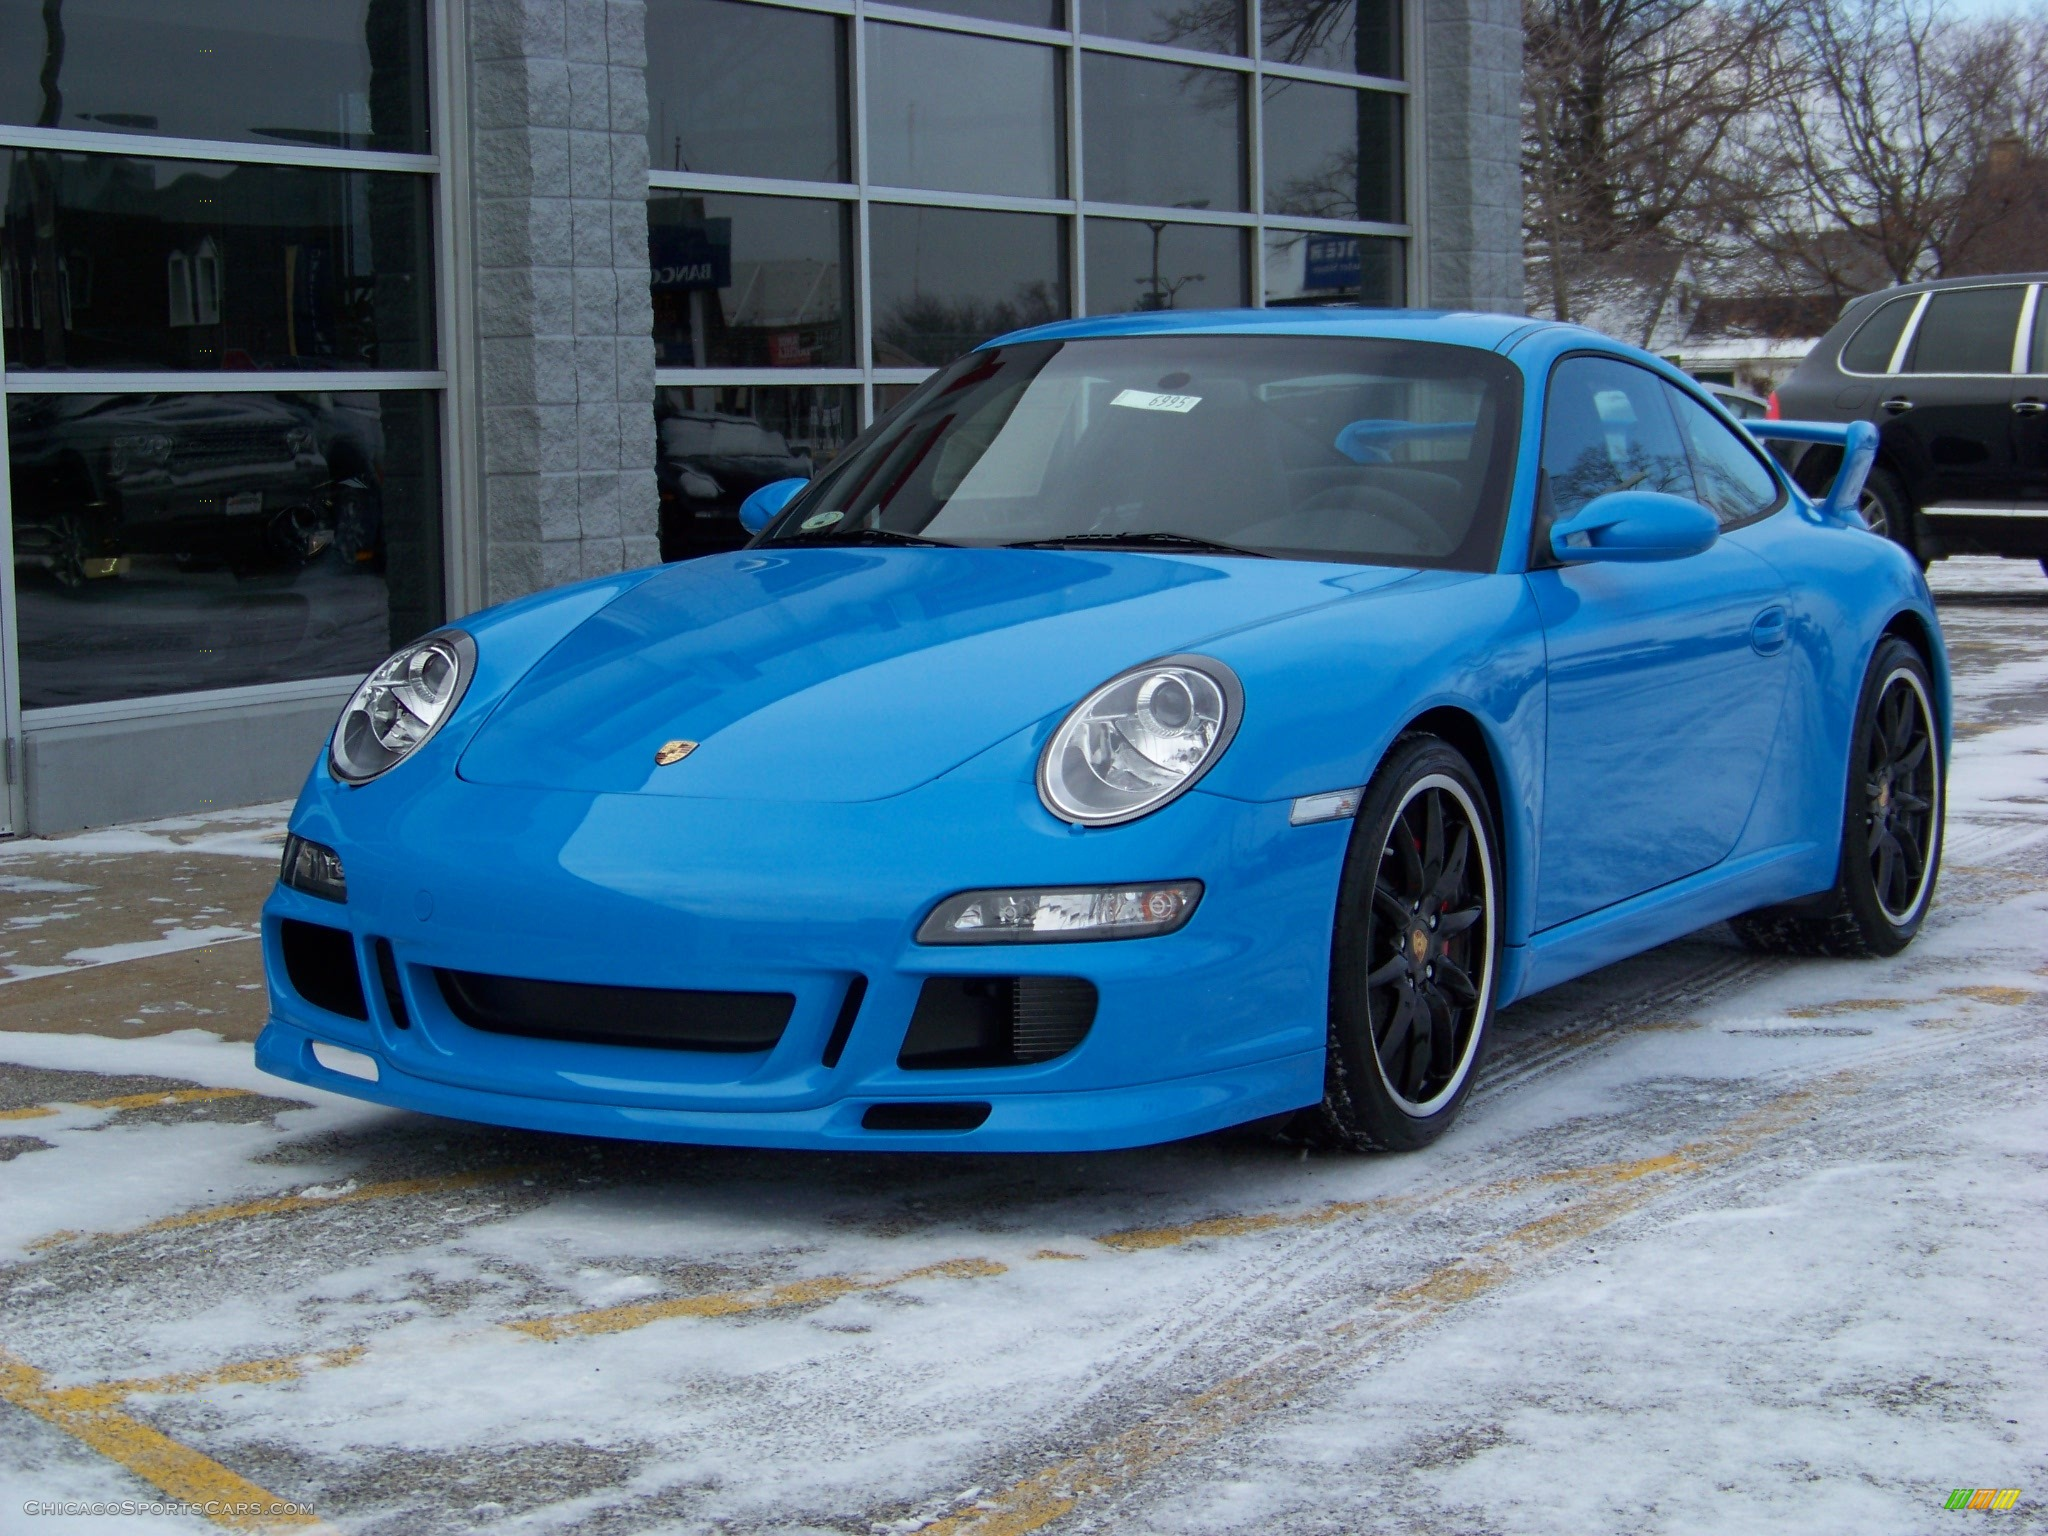 2008 Porsche 911 Carrera S Coupe In Mexico Blue Paint To